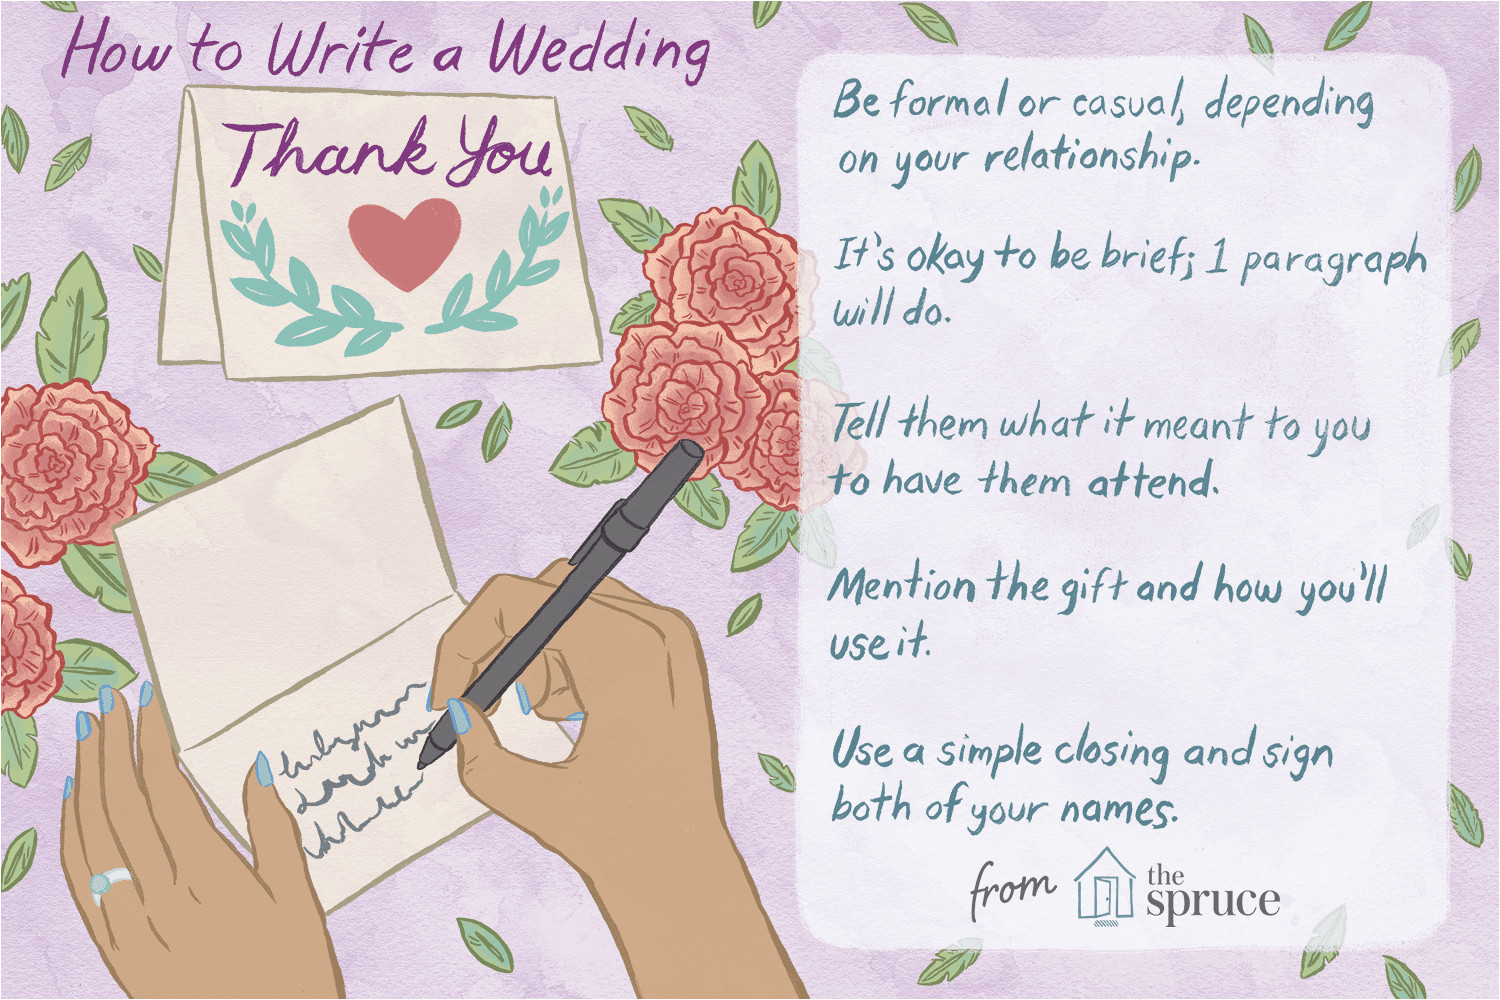 how to write wedding thank you cards 3489714 v2 5c7441b8c9e77c000107b63d png